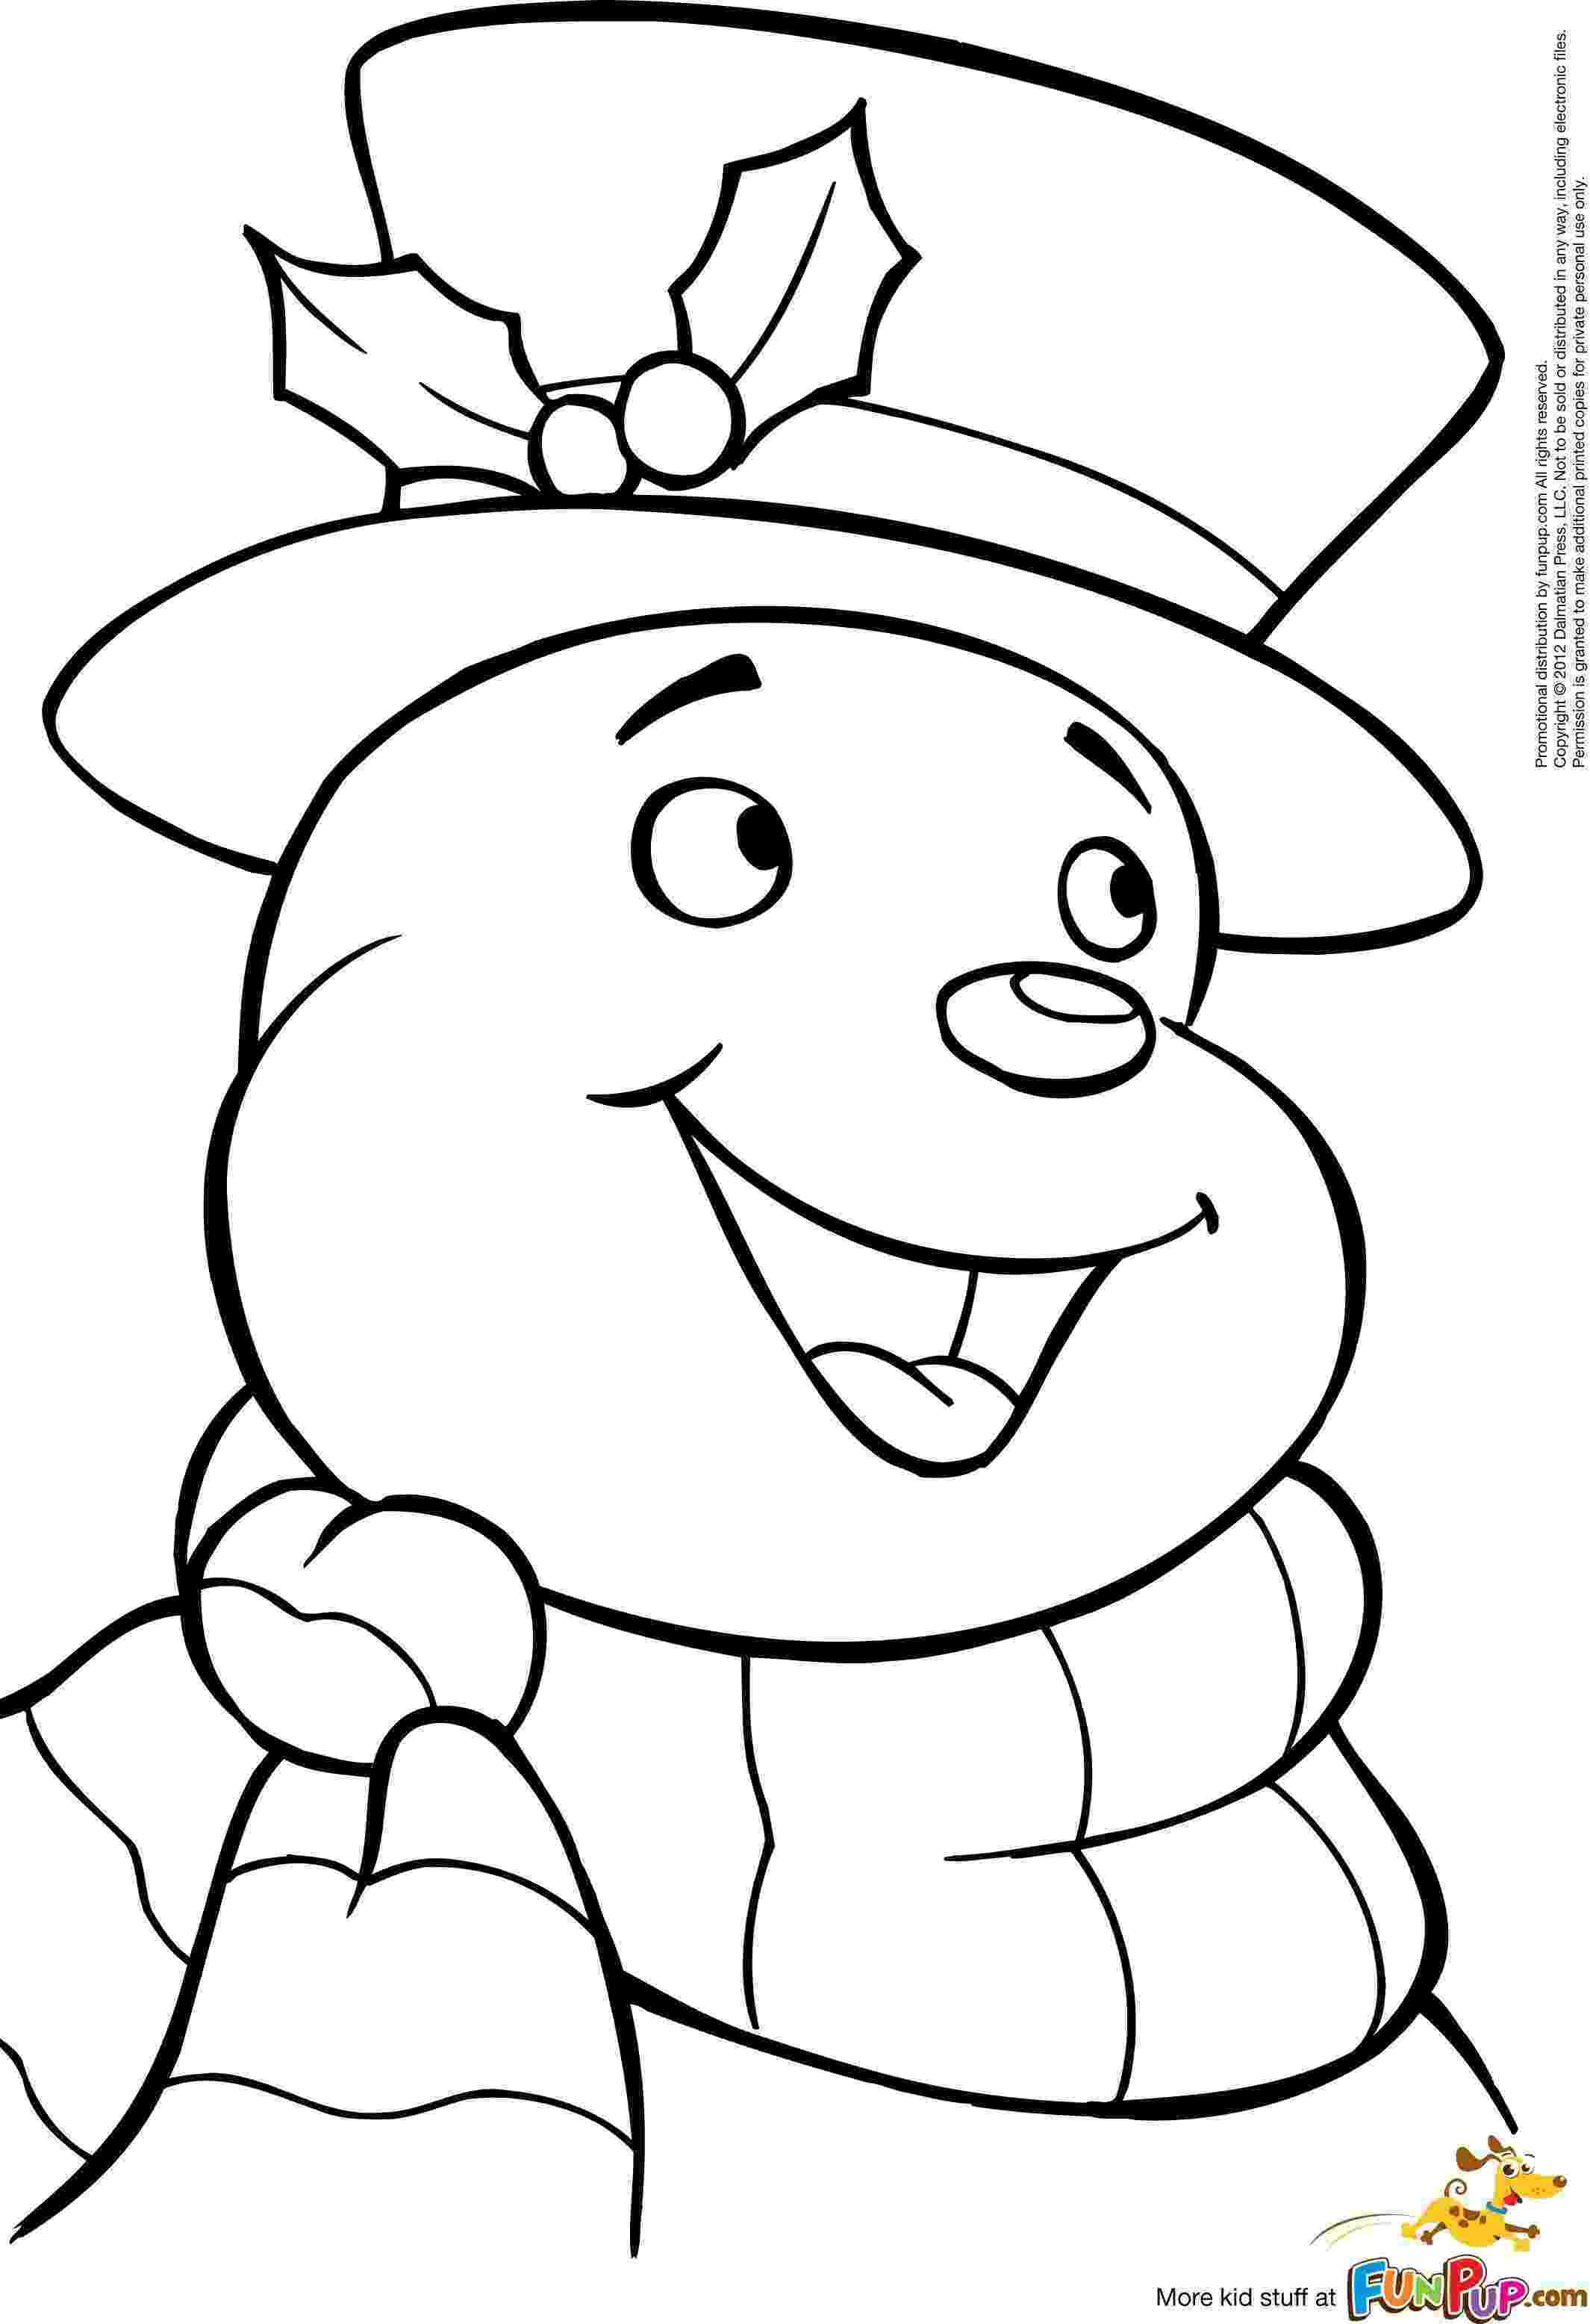 printable coloring pages snowman printable jolly snowman coloring page to print and color printable snowman coloring pages